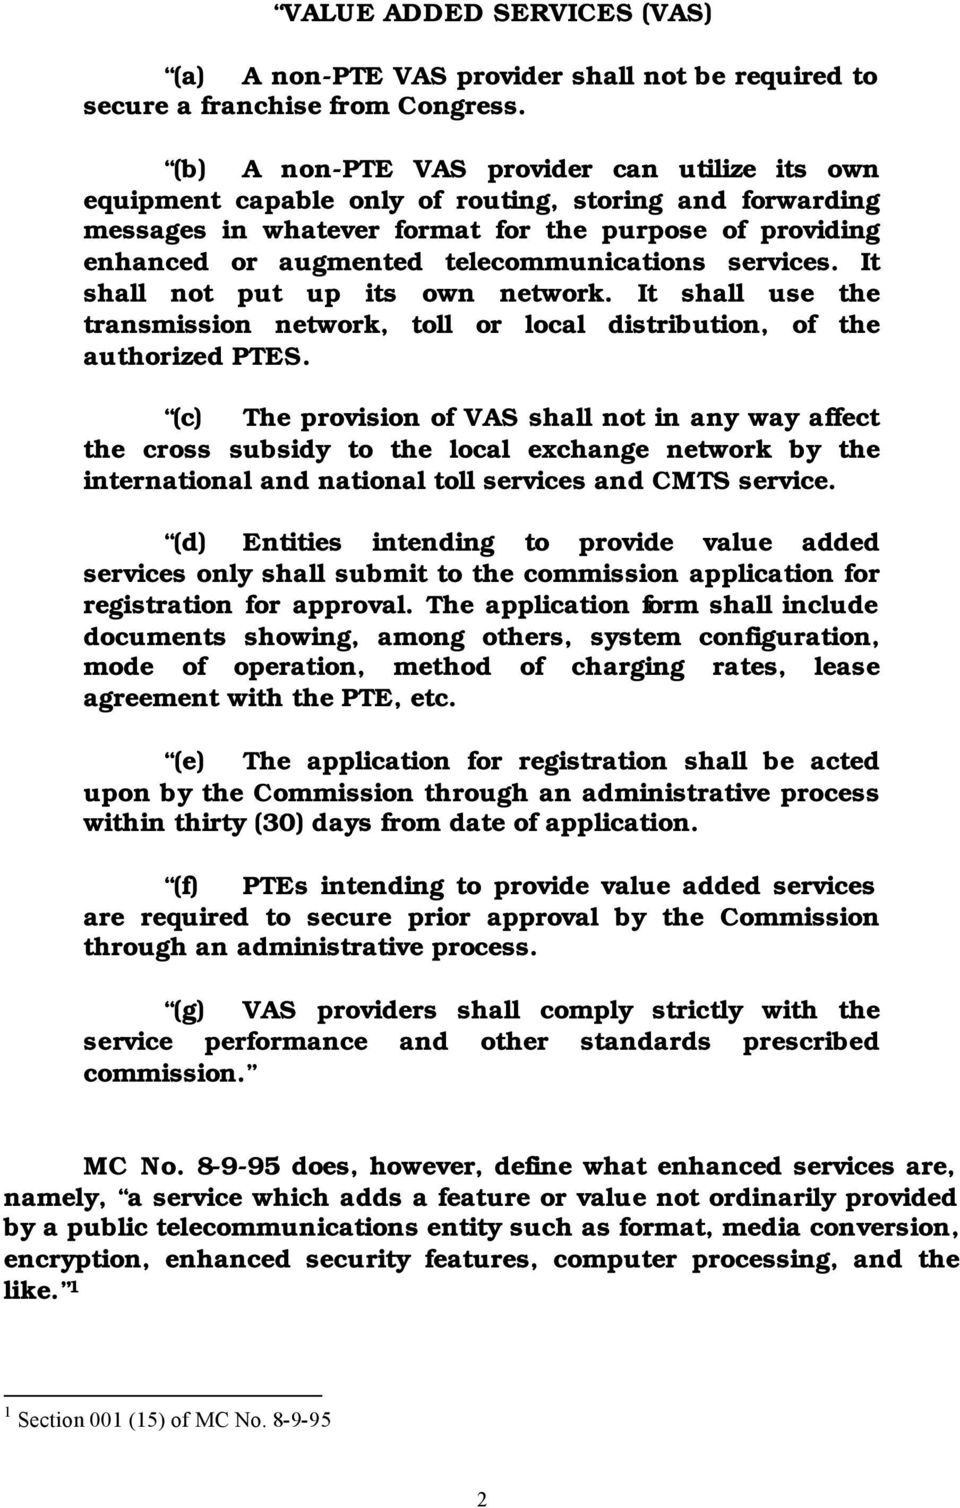 telecommunications services. It shall not put up its own network. It shall use the transmission network, toll or local distribution, of the authorized PTES.